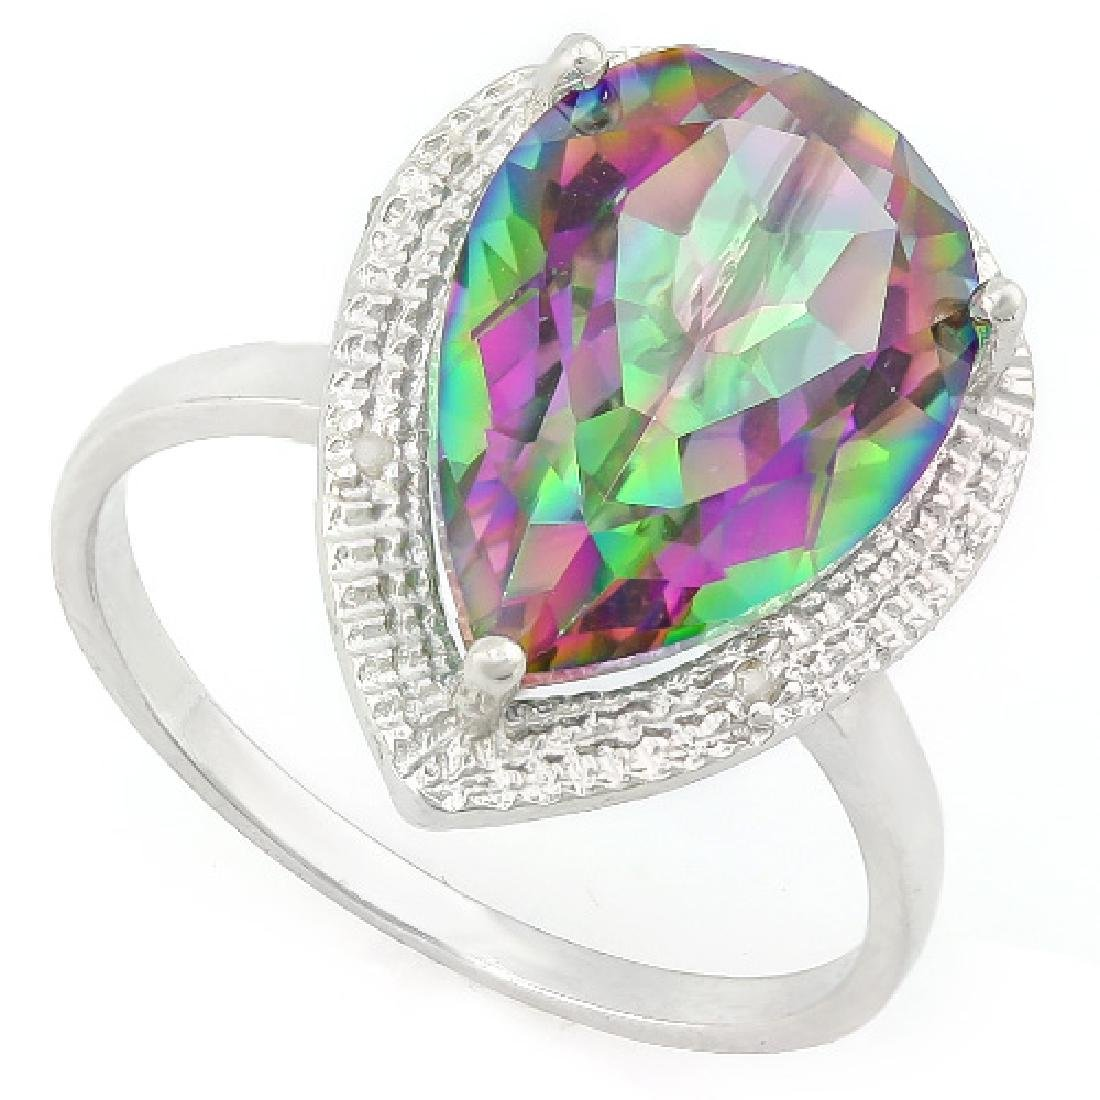 5 1/5 CARAT MYSTIC GEMSTONE & DIAMOND 925 STERLING SILV